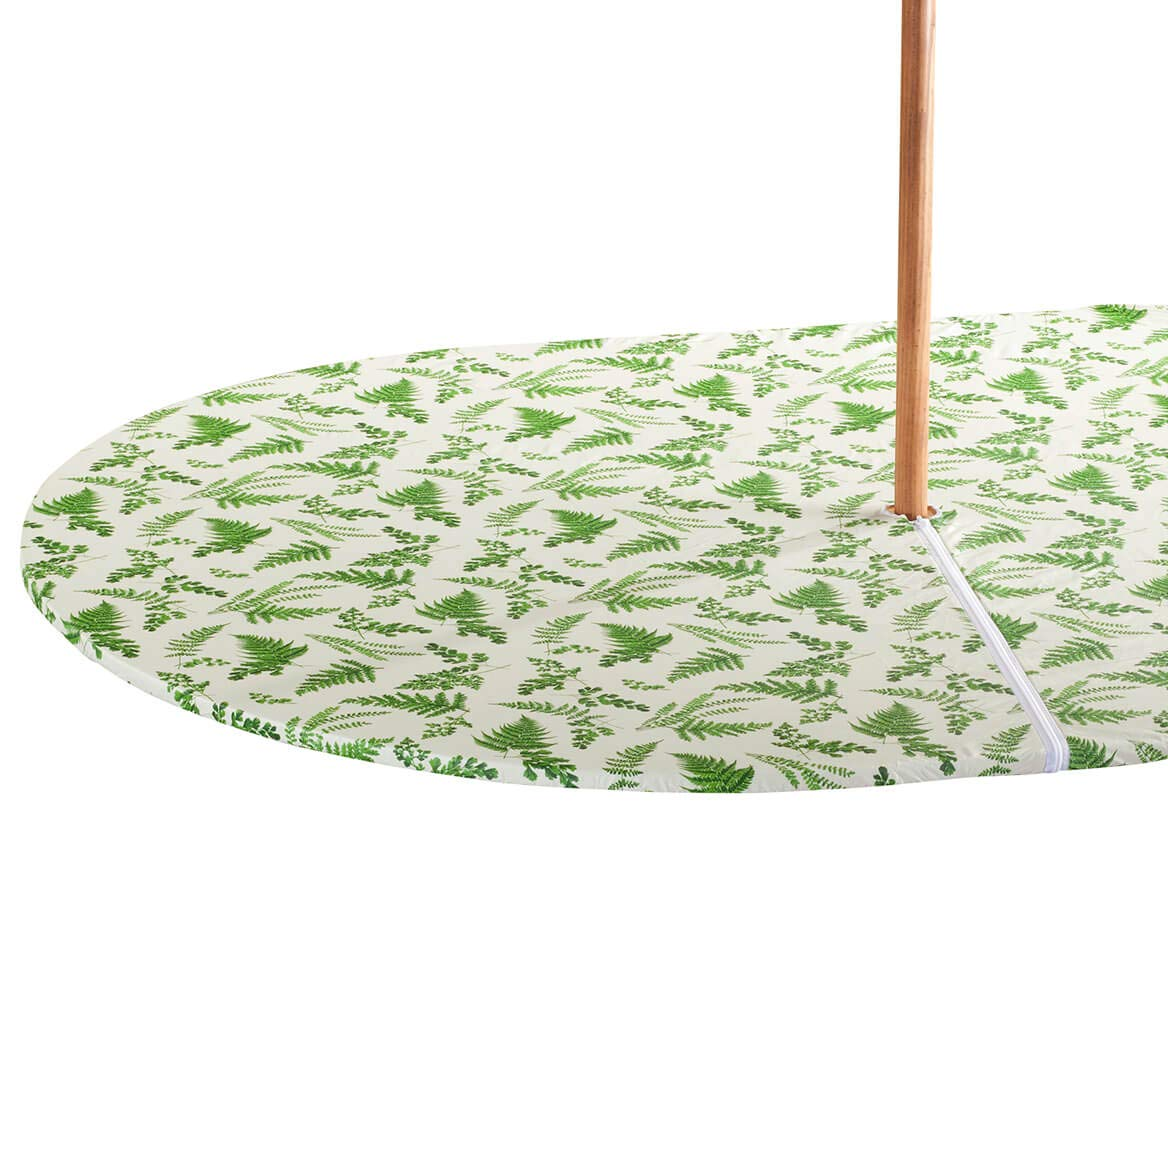 42 x 68 Oval Fox Valley Traders Garden Greenery Zippered Elasticized Umbrella Table Cover